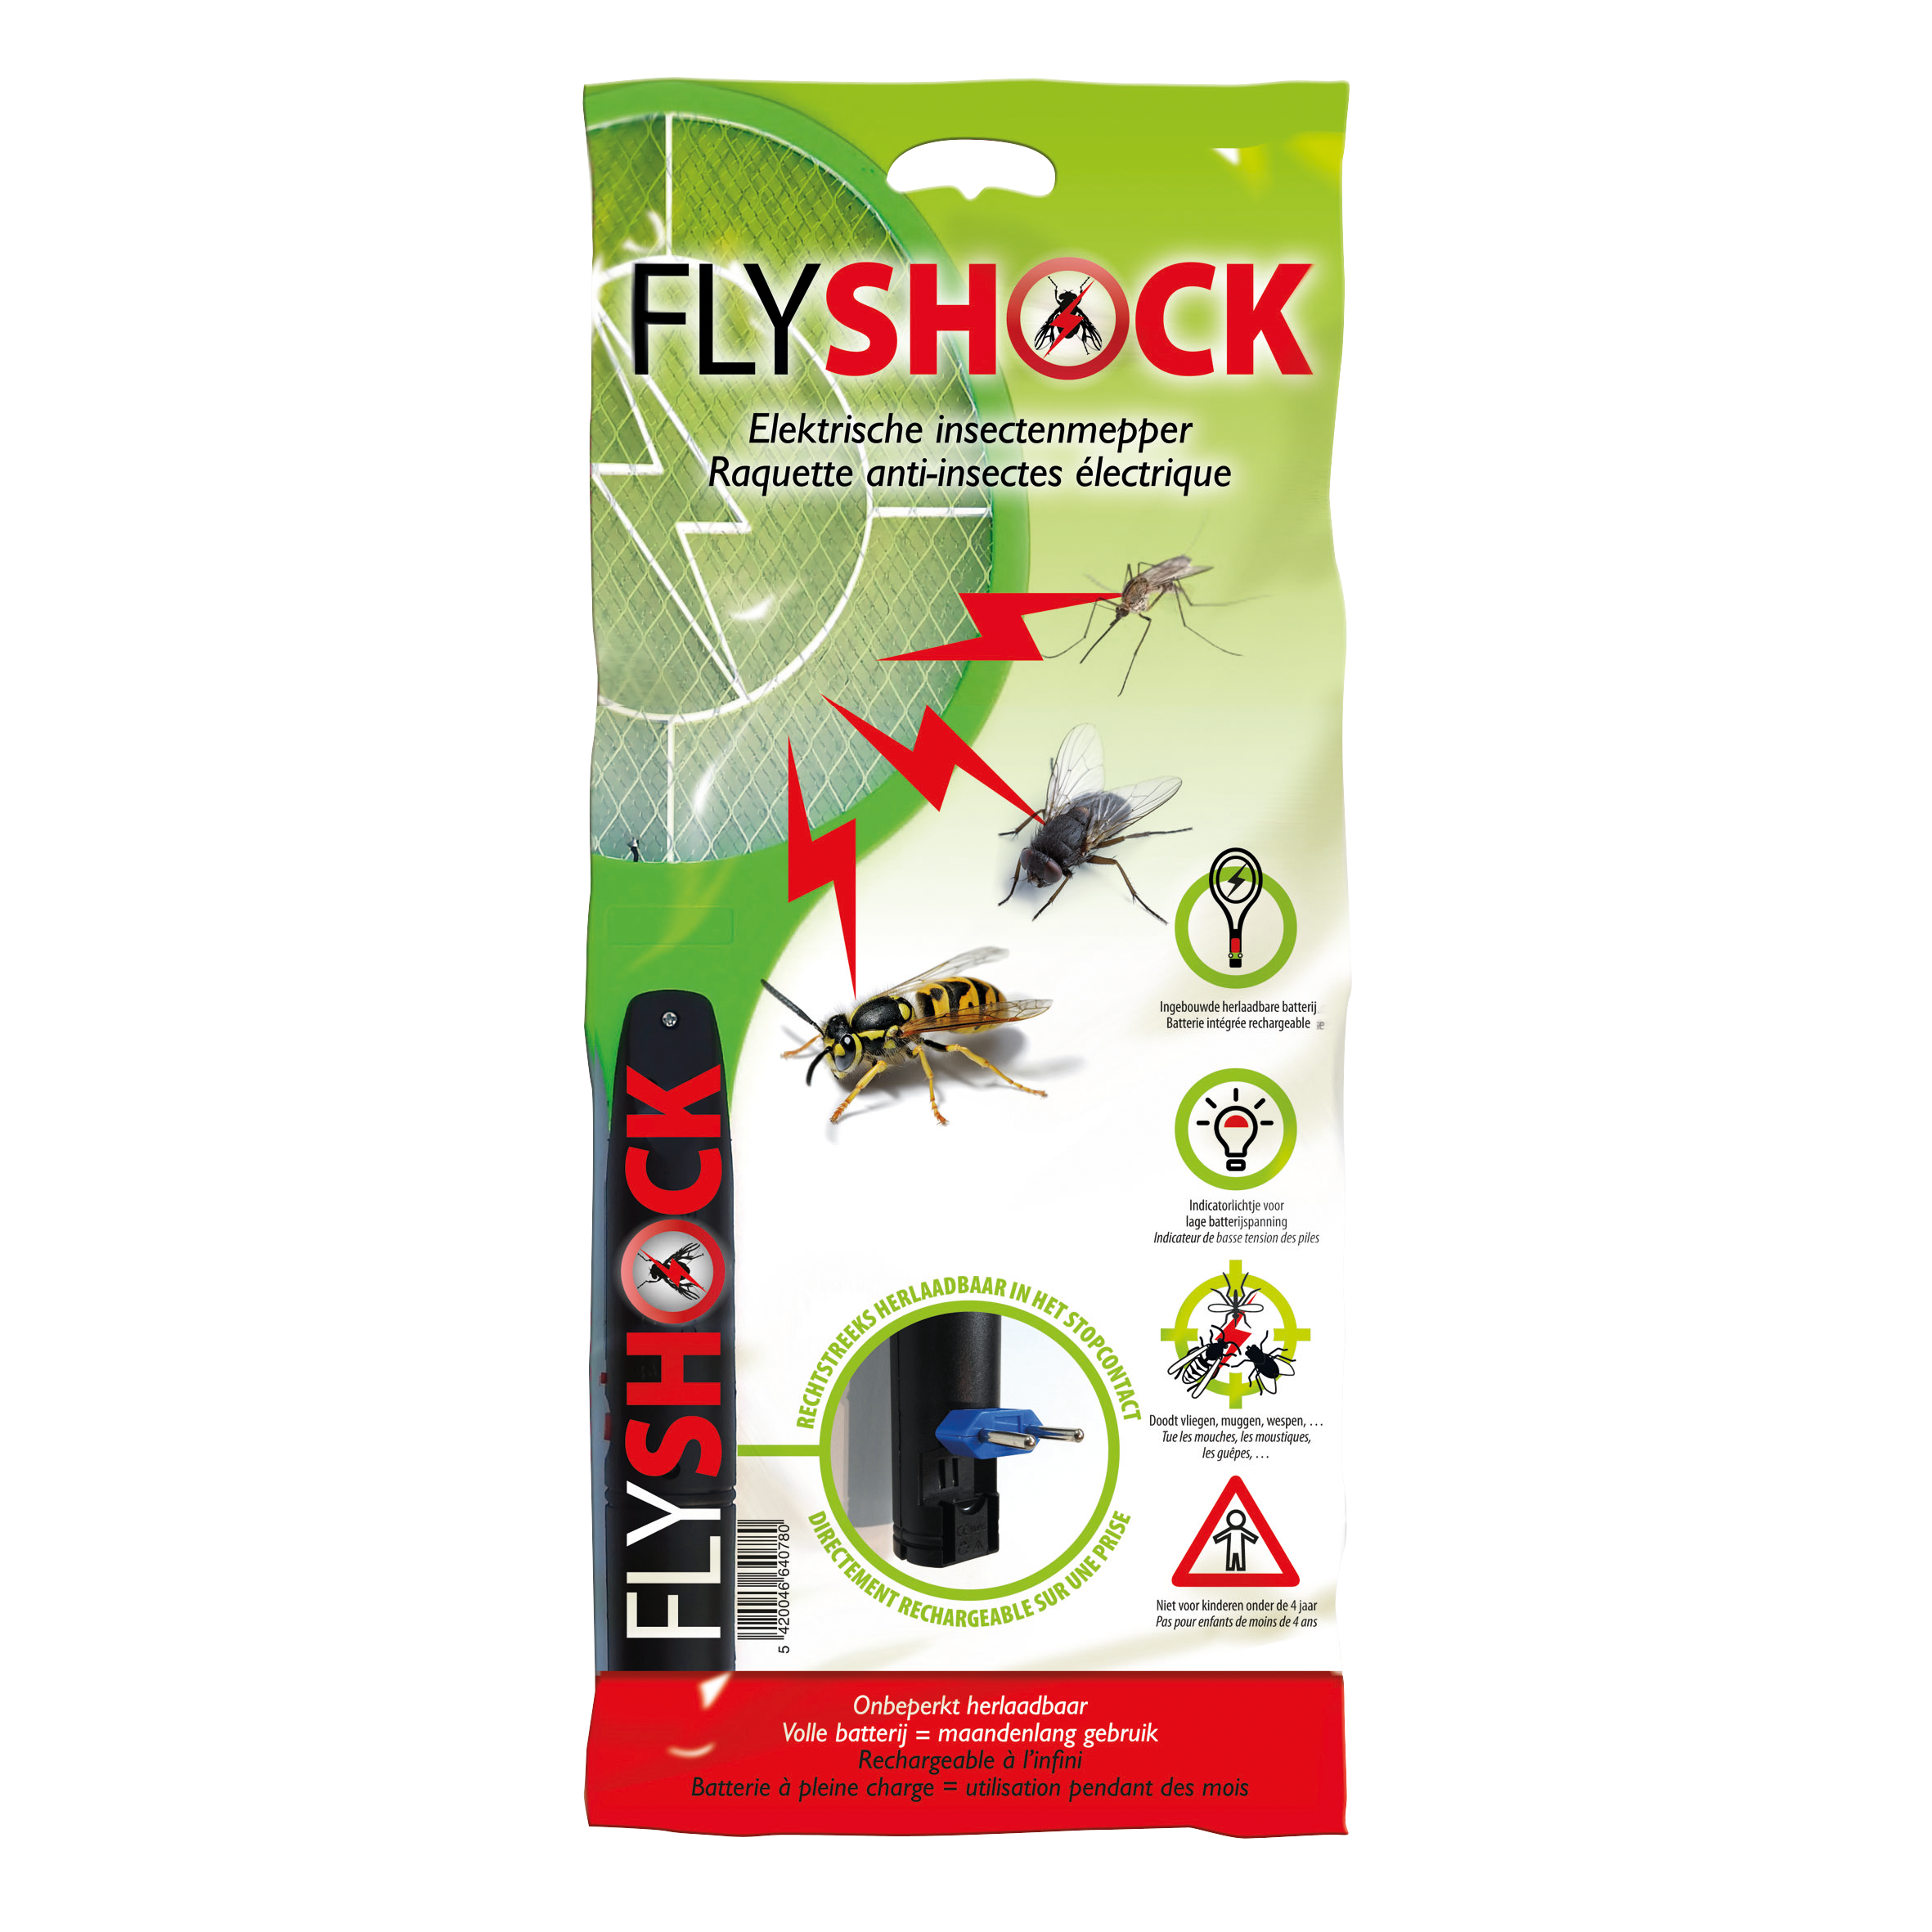 Fly Shock image